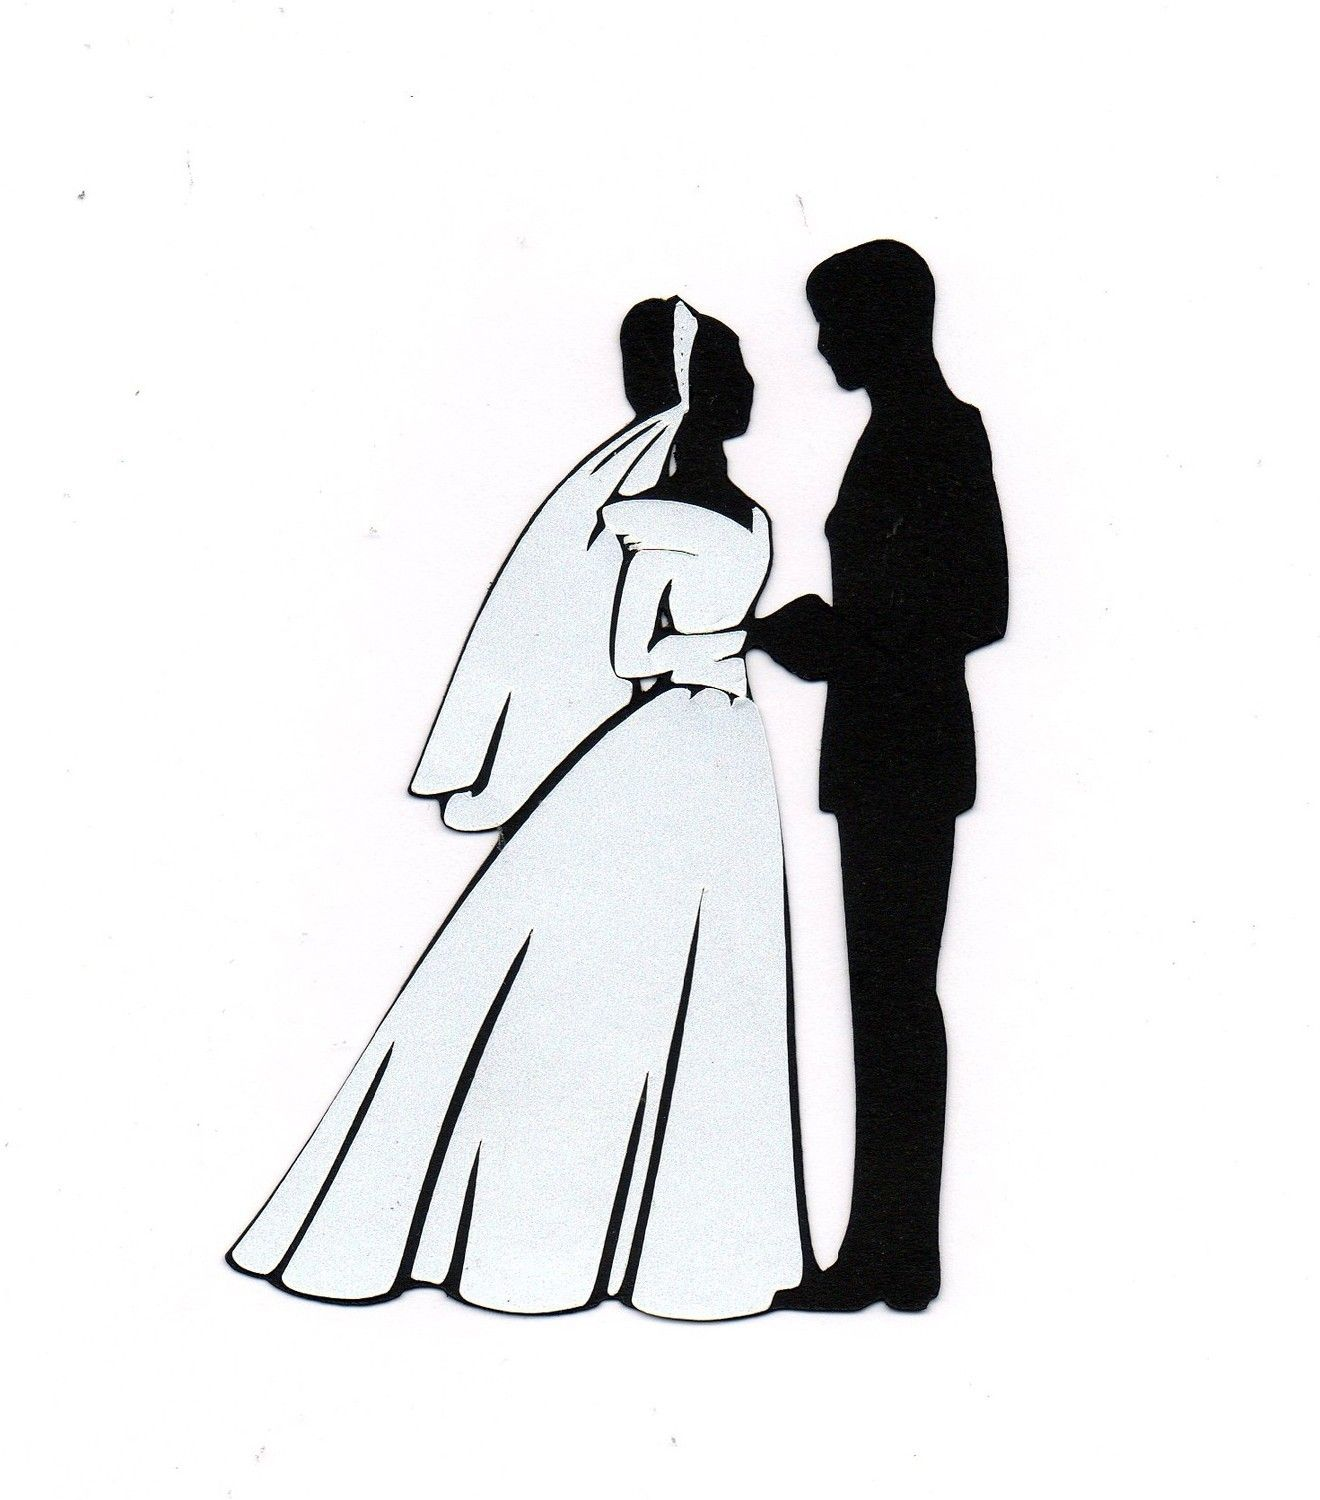 bride and groom silhouette clipart at getdrawings com free for rh getdrawings com bride and groom clipart black and white bride and groom clipart images